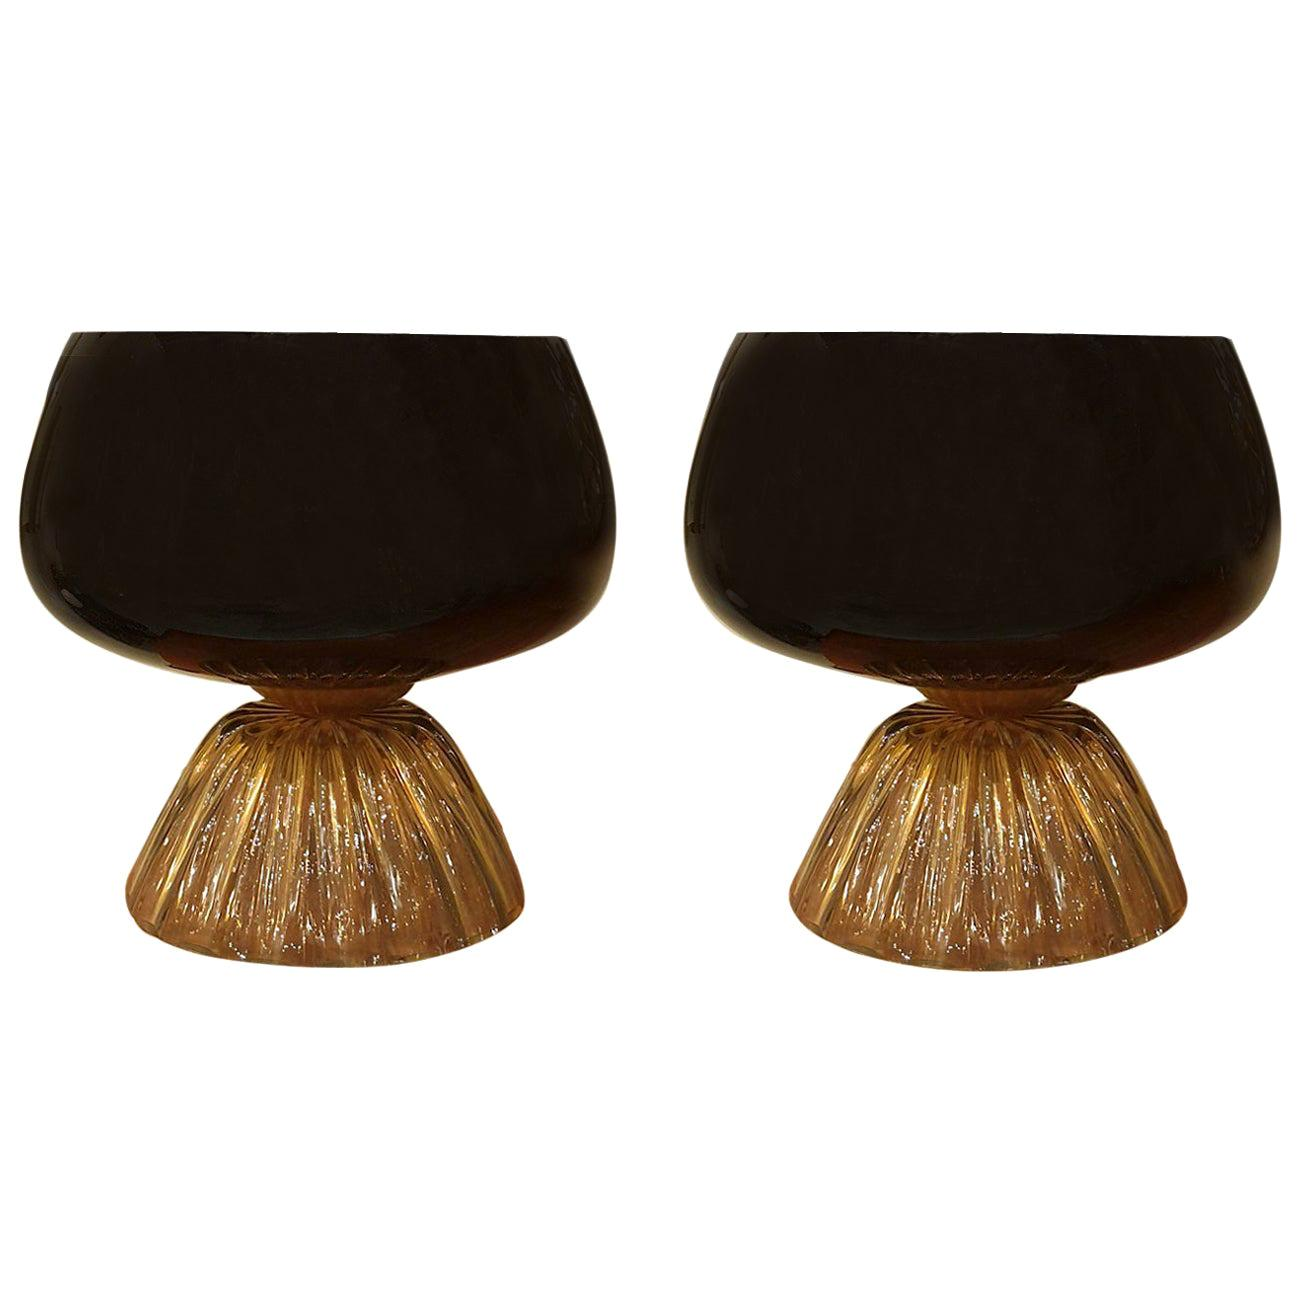 Large Mid-Century Modern Murano Black/Brown Glass, Cenedese Styl Lamps Italy 60s